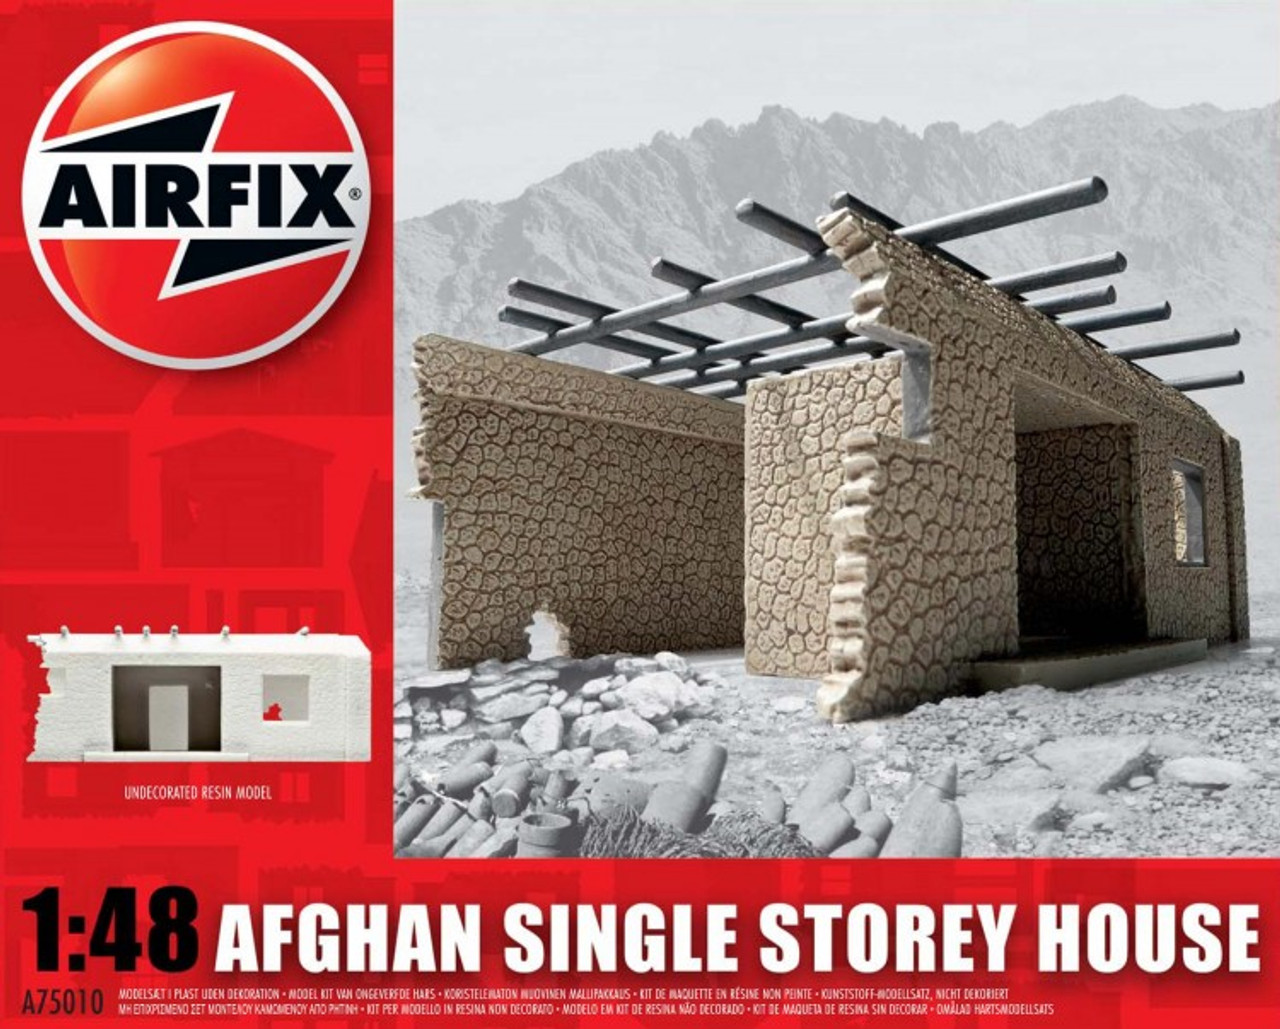 Airfix A75010 Afghan Single Storey House 1:48 Scale Model Kit